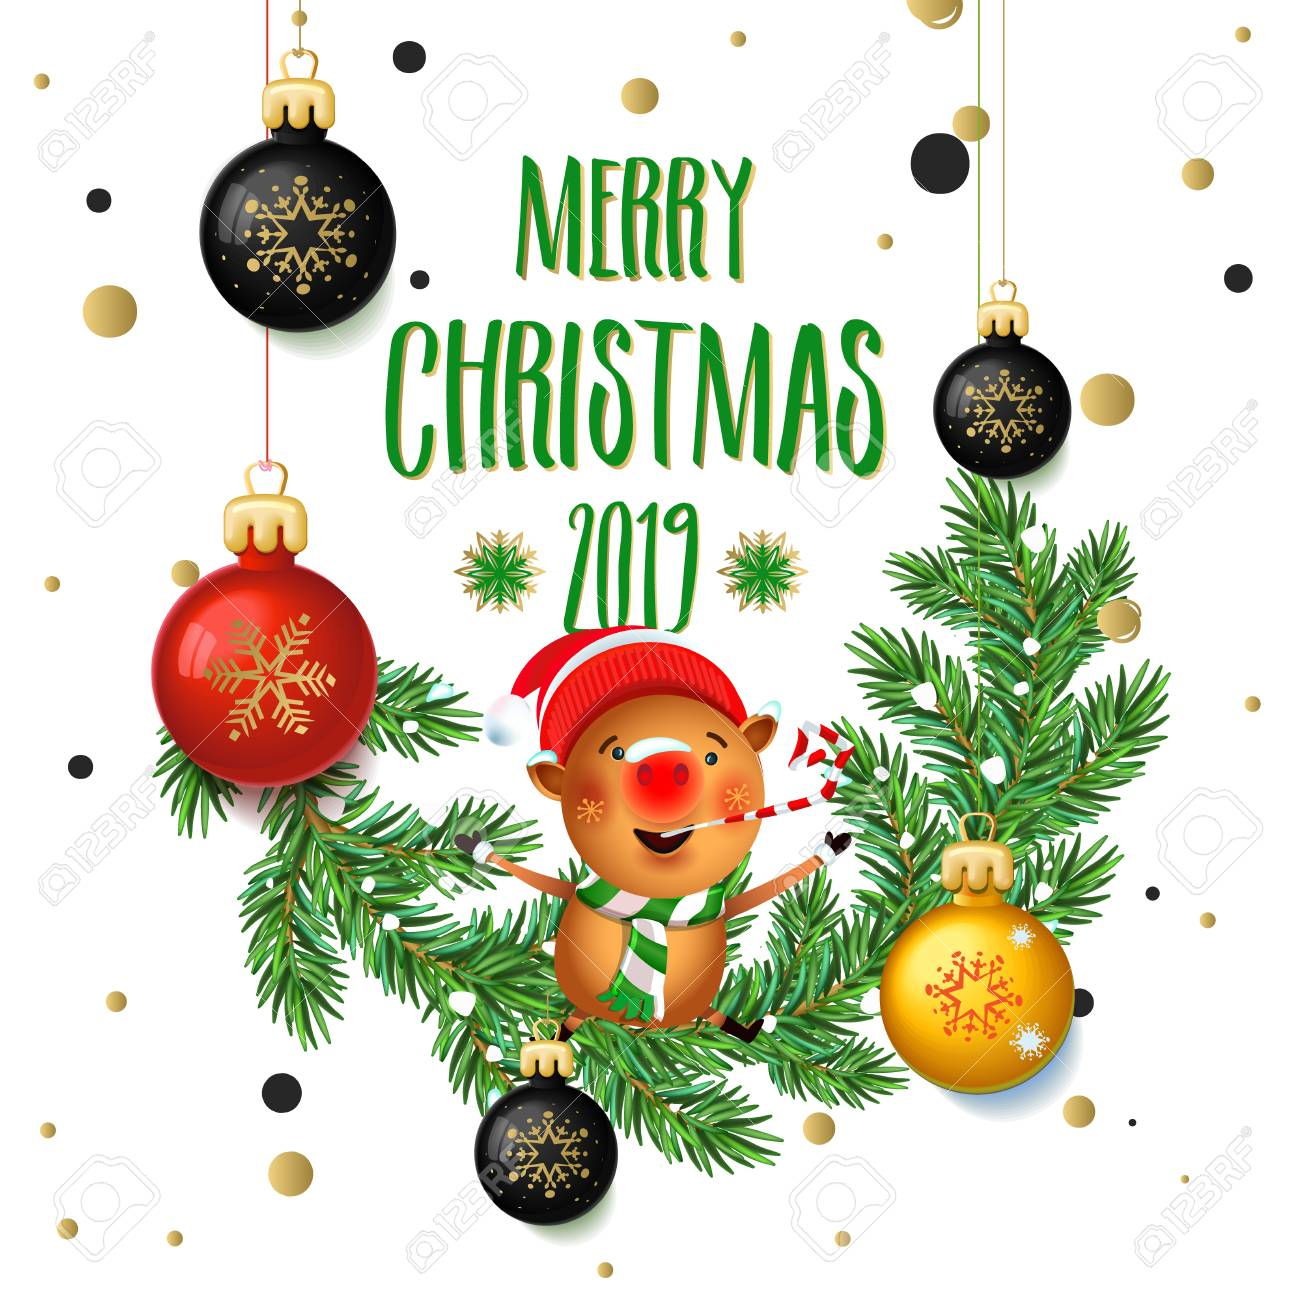 Merry Christmas Images 2019.Merry Christmas 2019 Poster Card With Pig Calligraphy Text